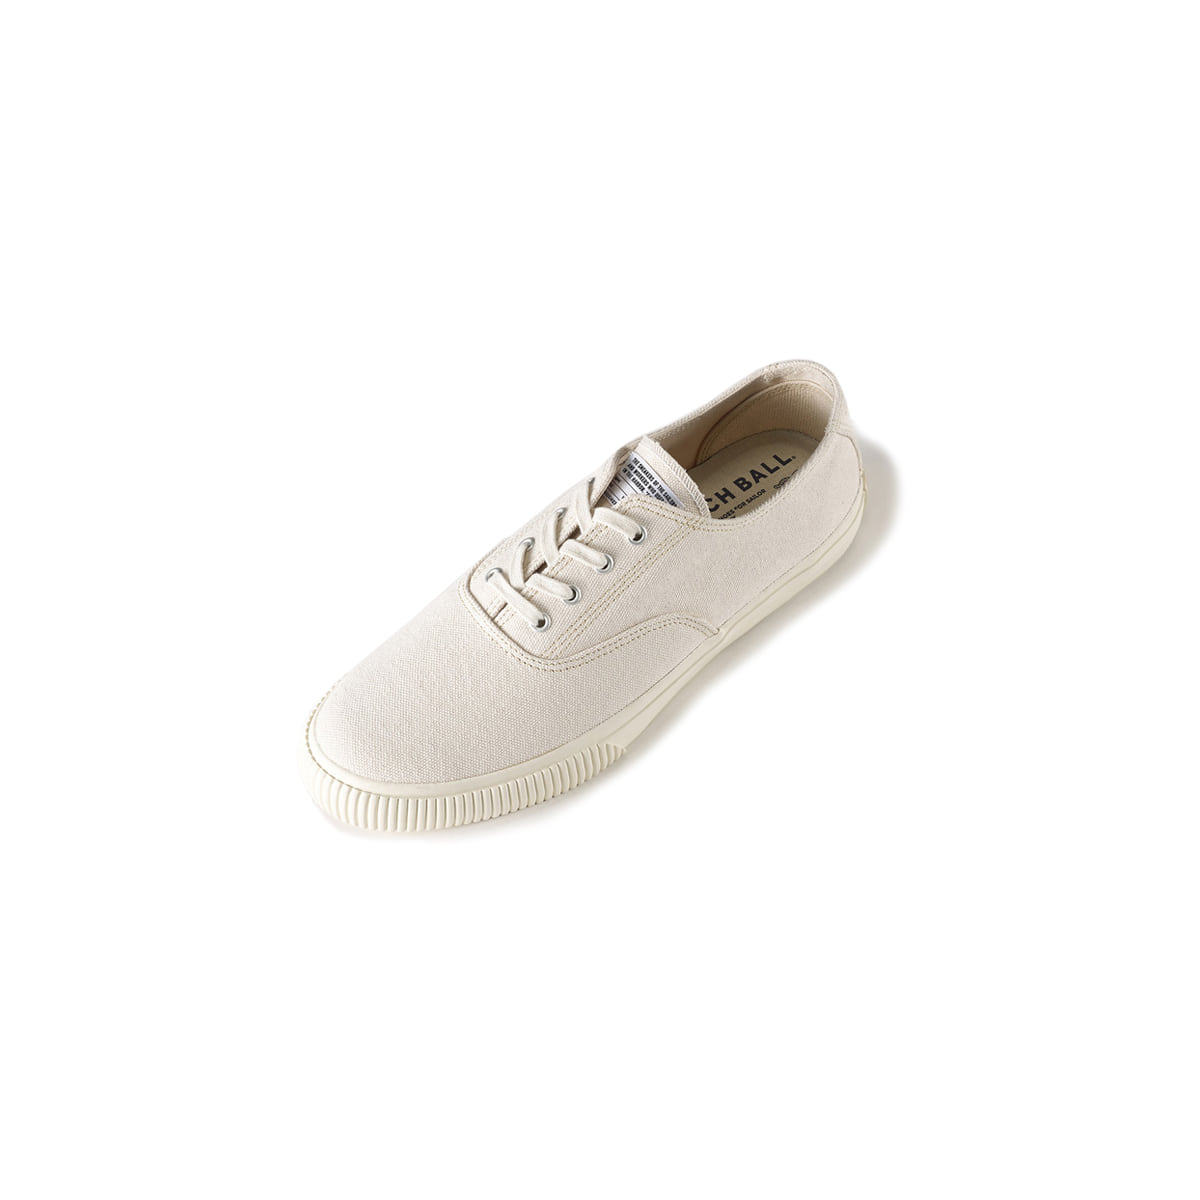 [BRUSHER] CATCH BALL DECKSHOE 'SHELL WHITE'